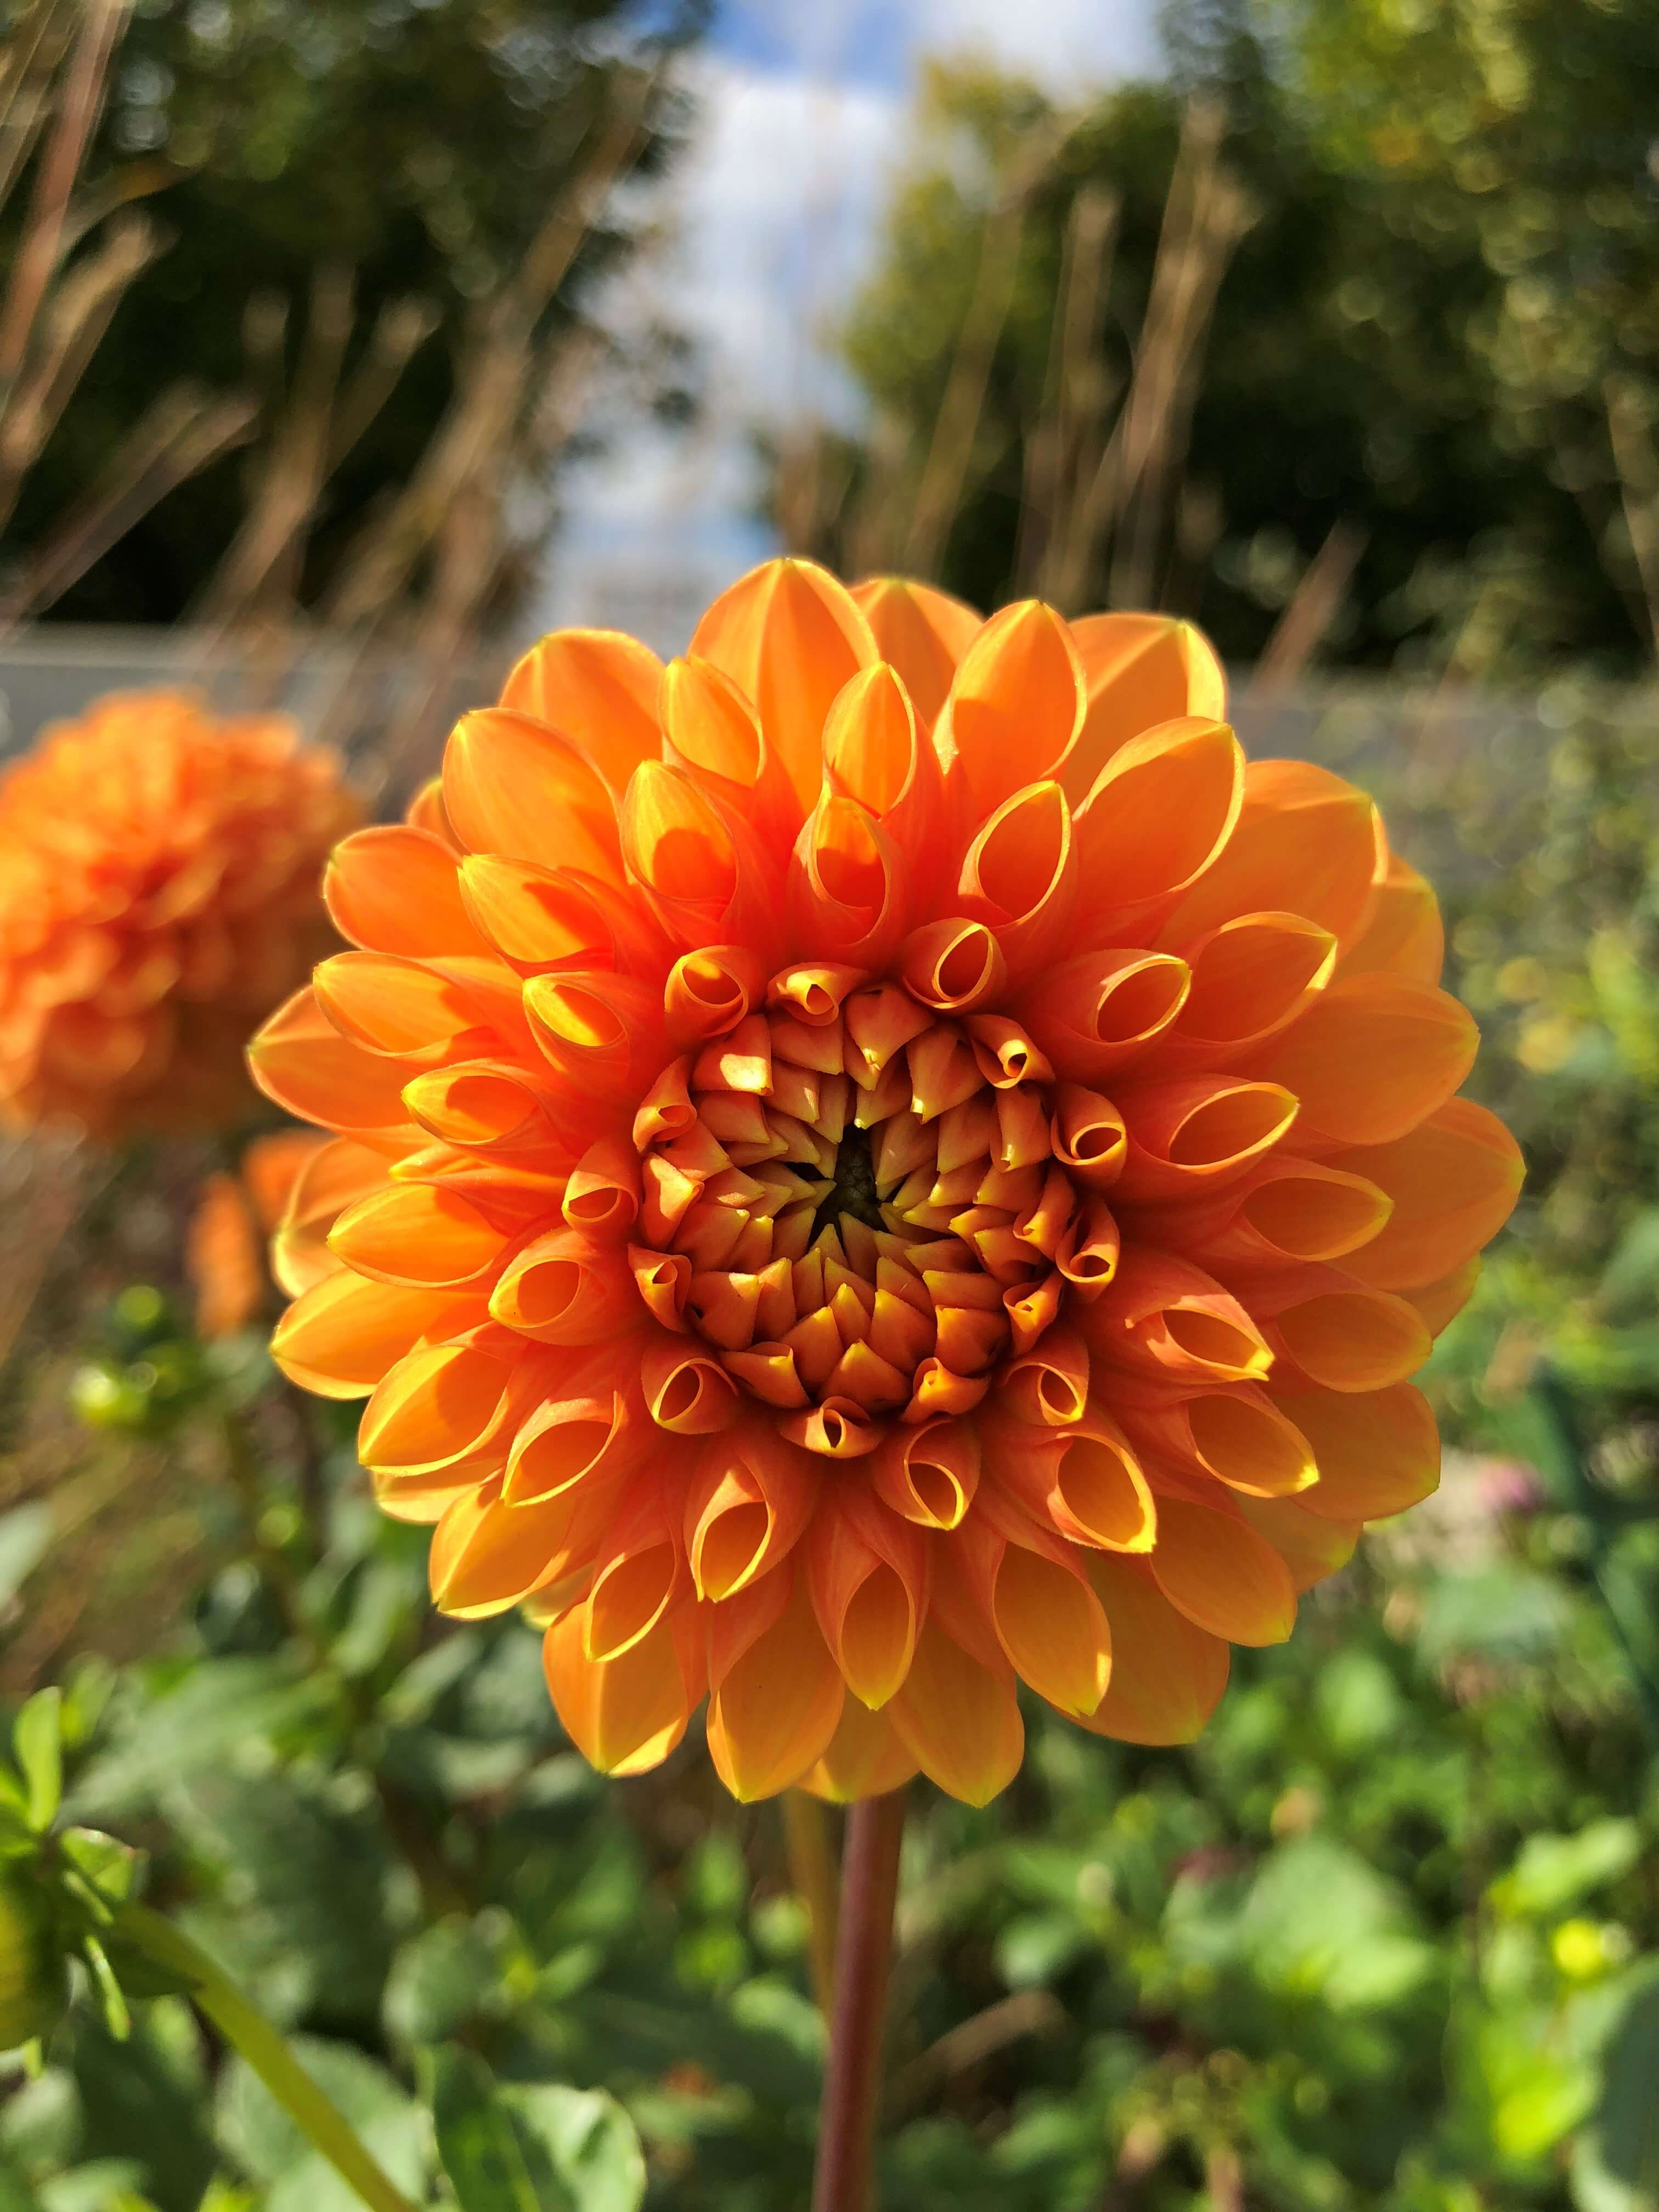 Rich orange of Dahlia 'Maarn' lights up the Koehn Garden perennial border in October. Photo by Leslie Hunter, Oct. 11, 2018.